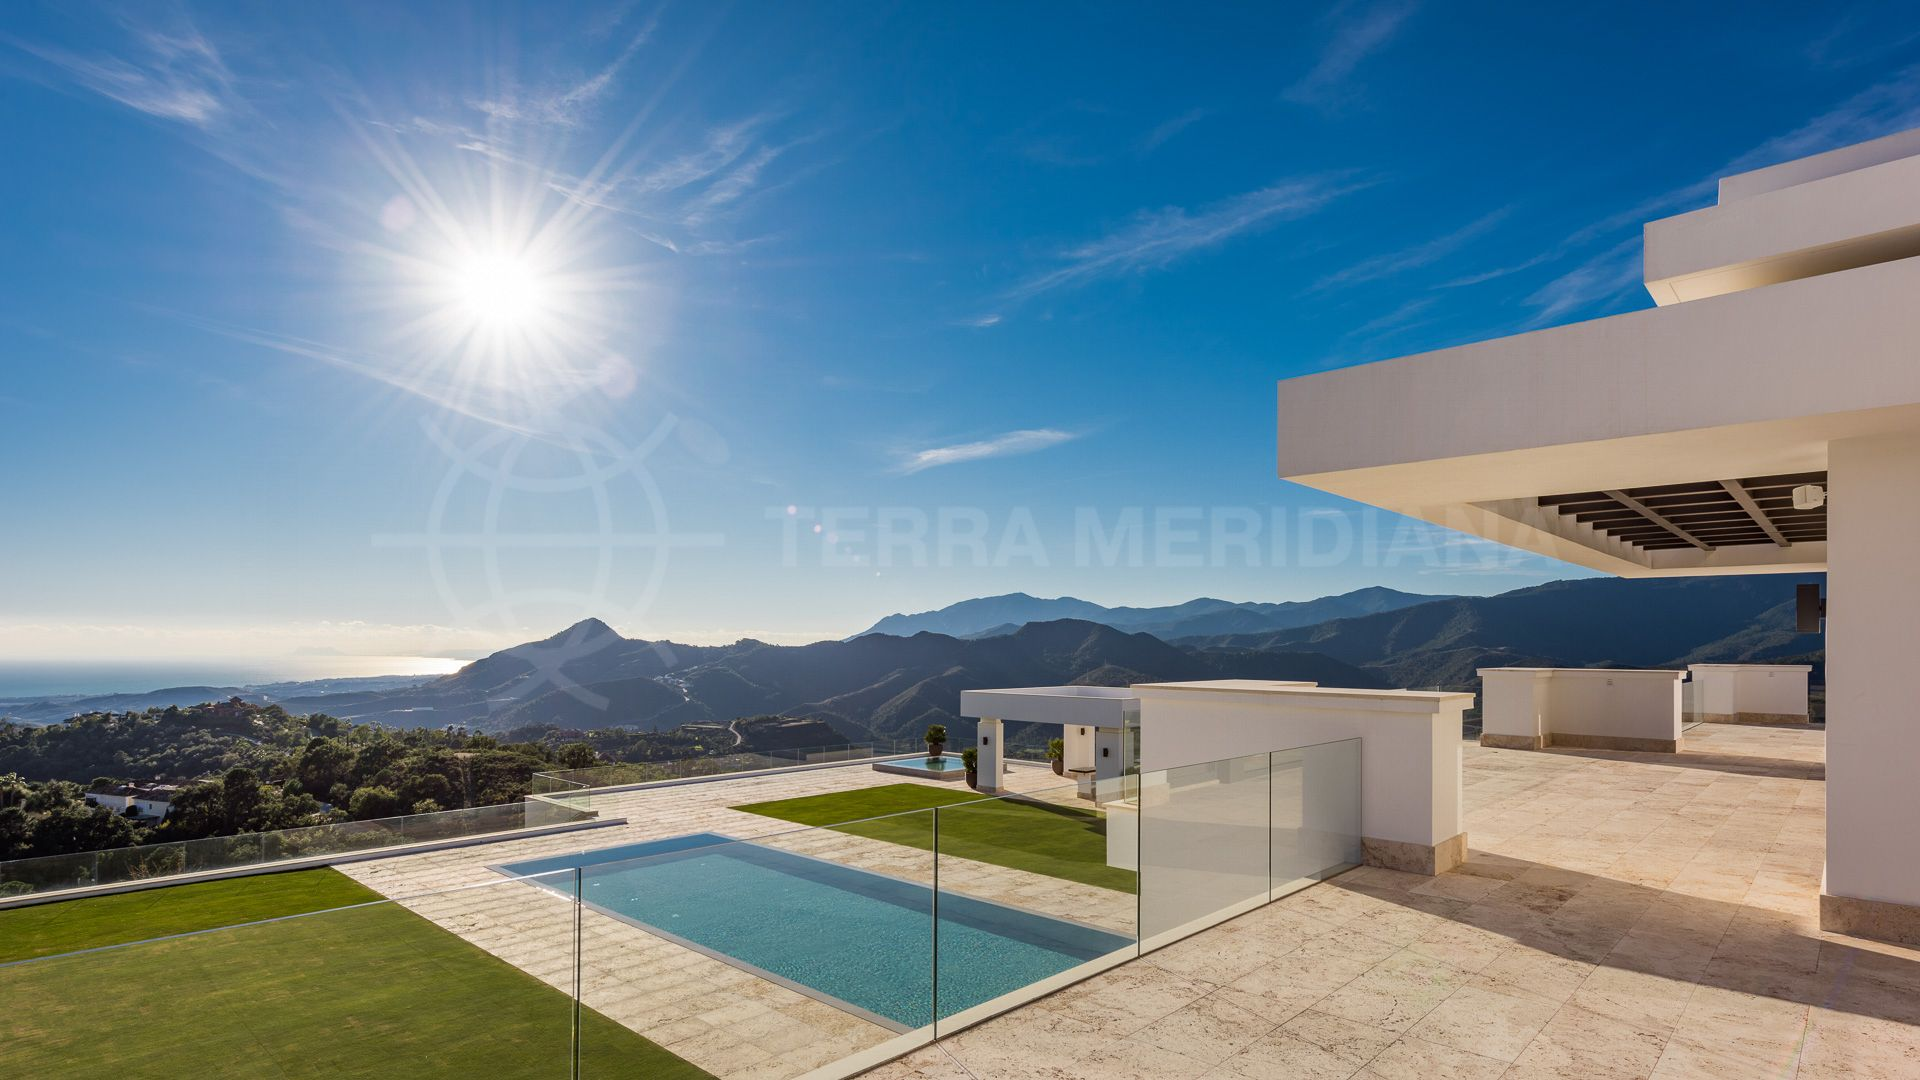 Insuring your property in Spain for long- and short-term rental